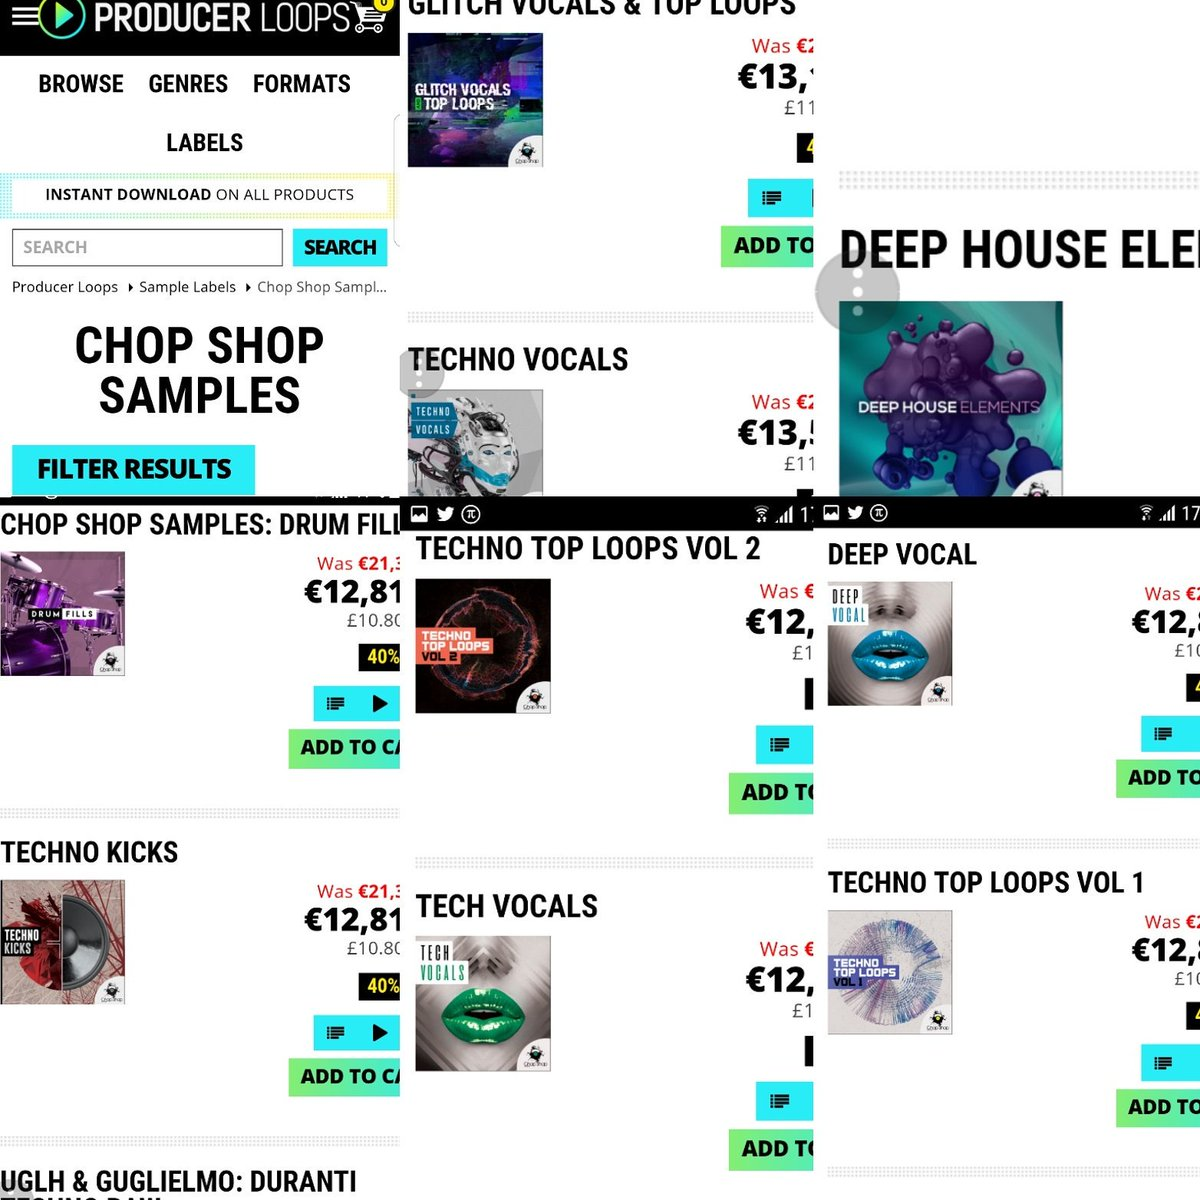 Summer sale 40% off on Producer Loops  https://www. producerloops.com/Chop-Shop-Samp les/ &nbsp; …  #deephouse #housemusic #soulfulhouse #techhouse #techno #djs #producers #club<br>http://pic.twitter.com/AaA4JjH4Ba